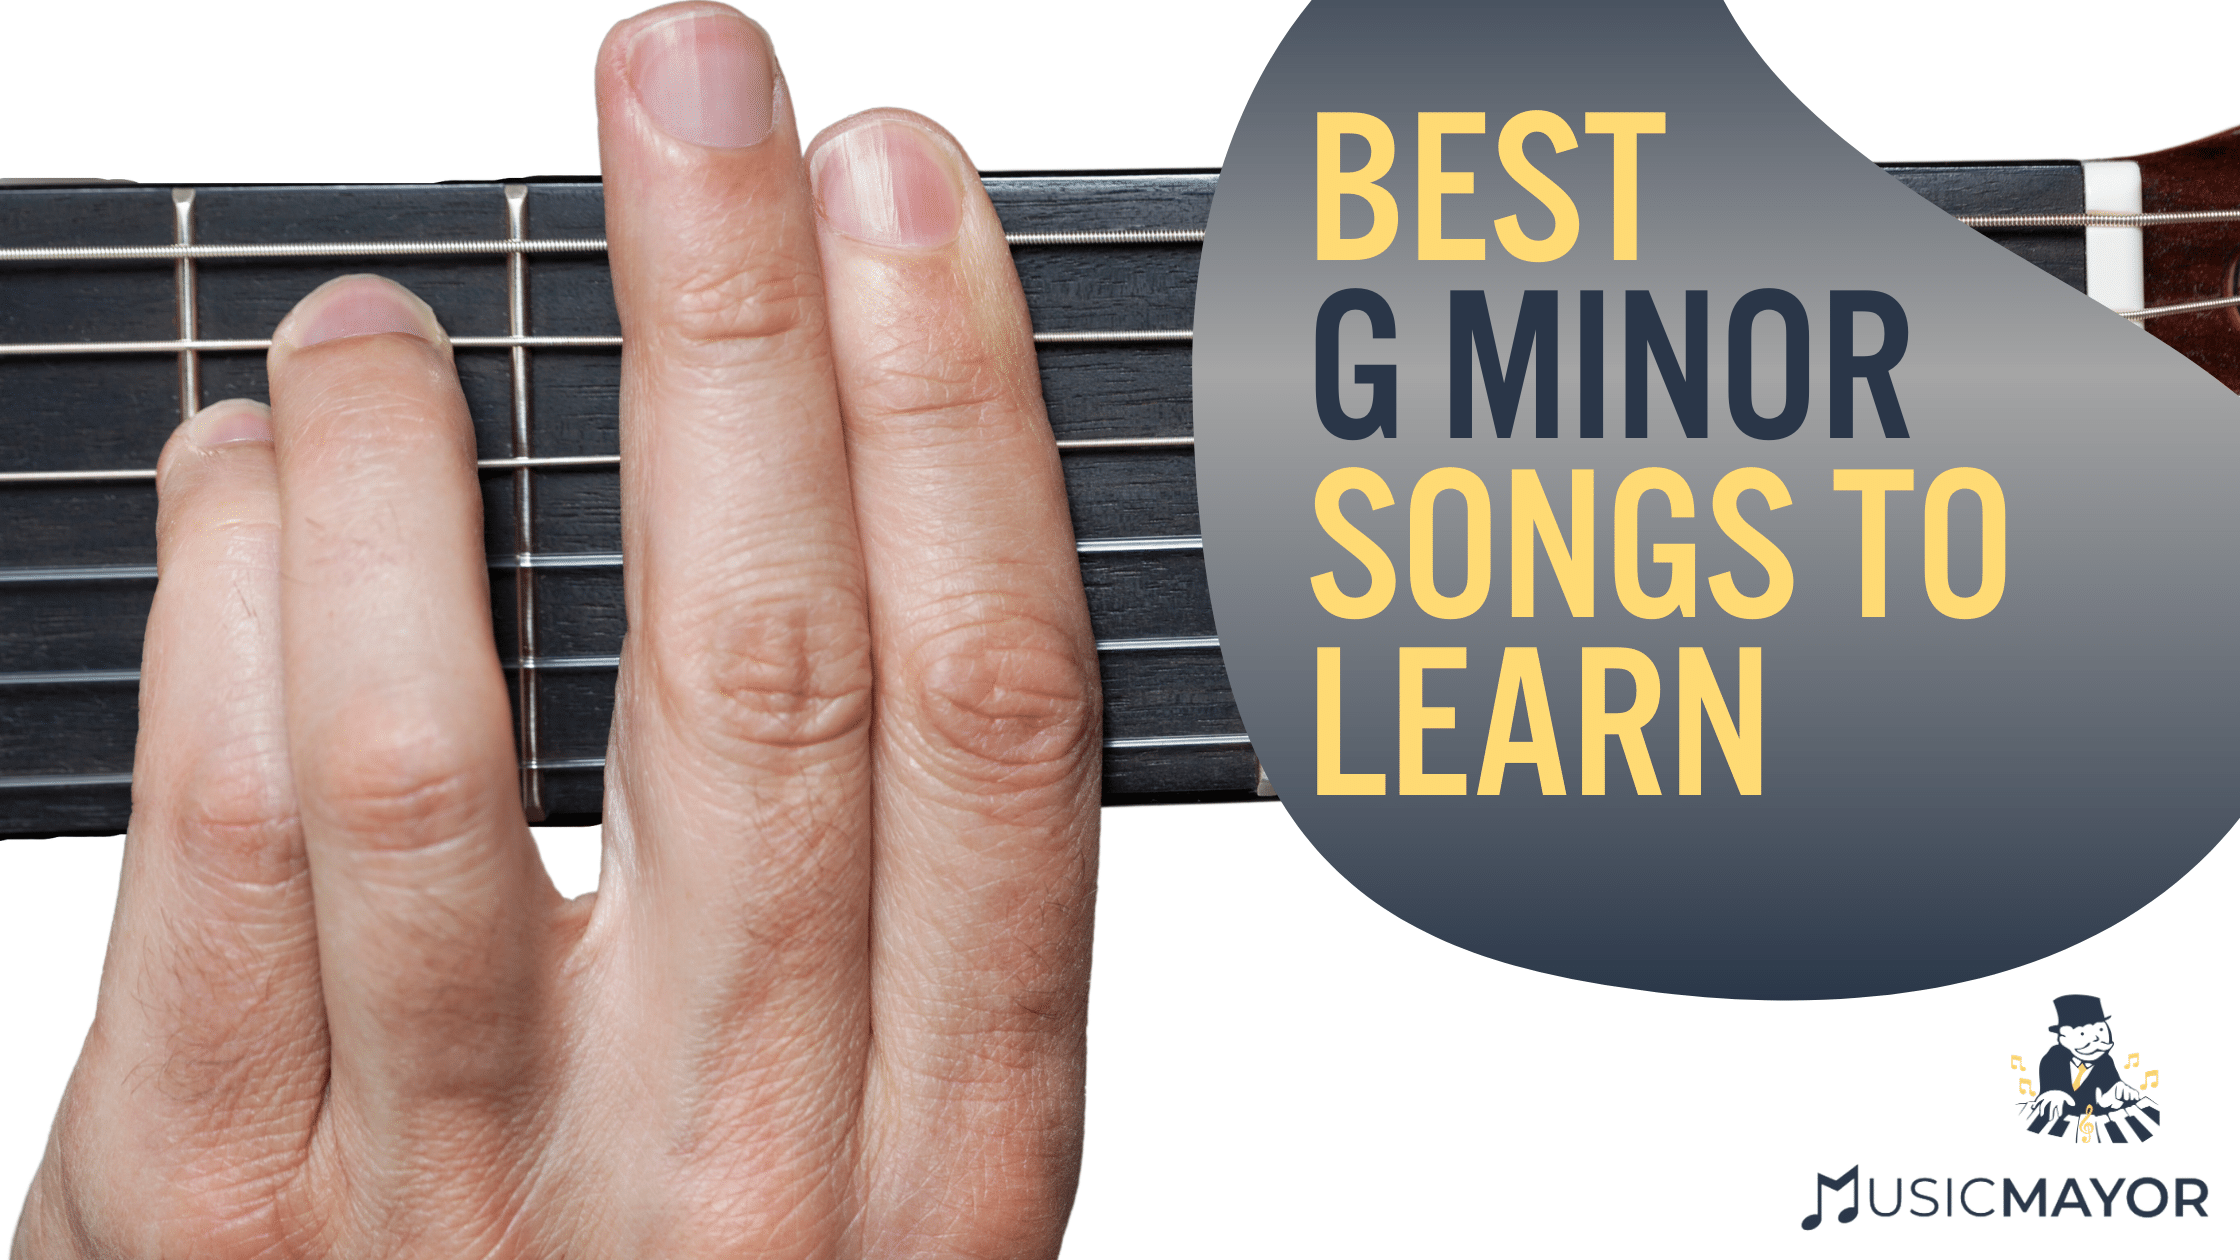 famous g minor songs